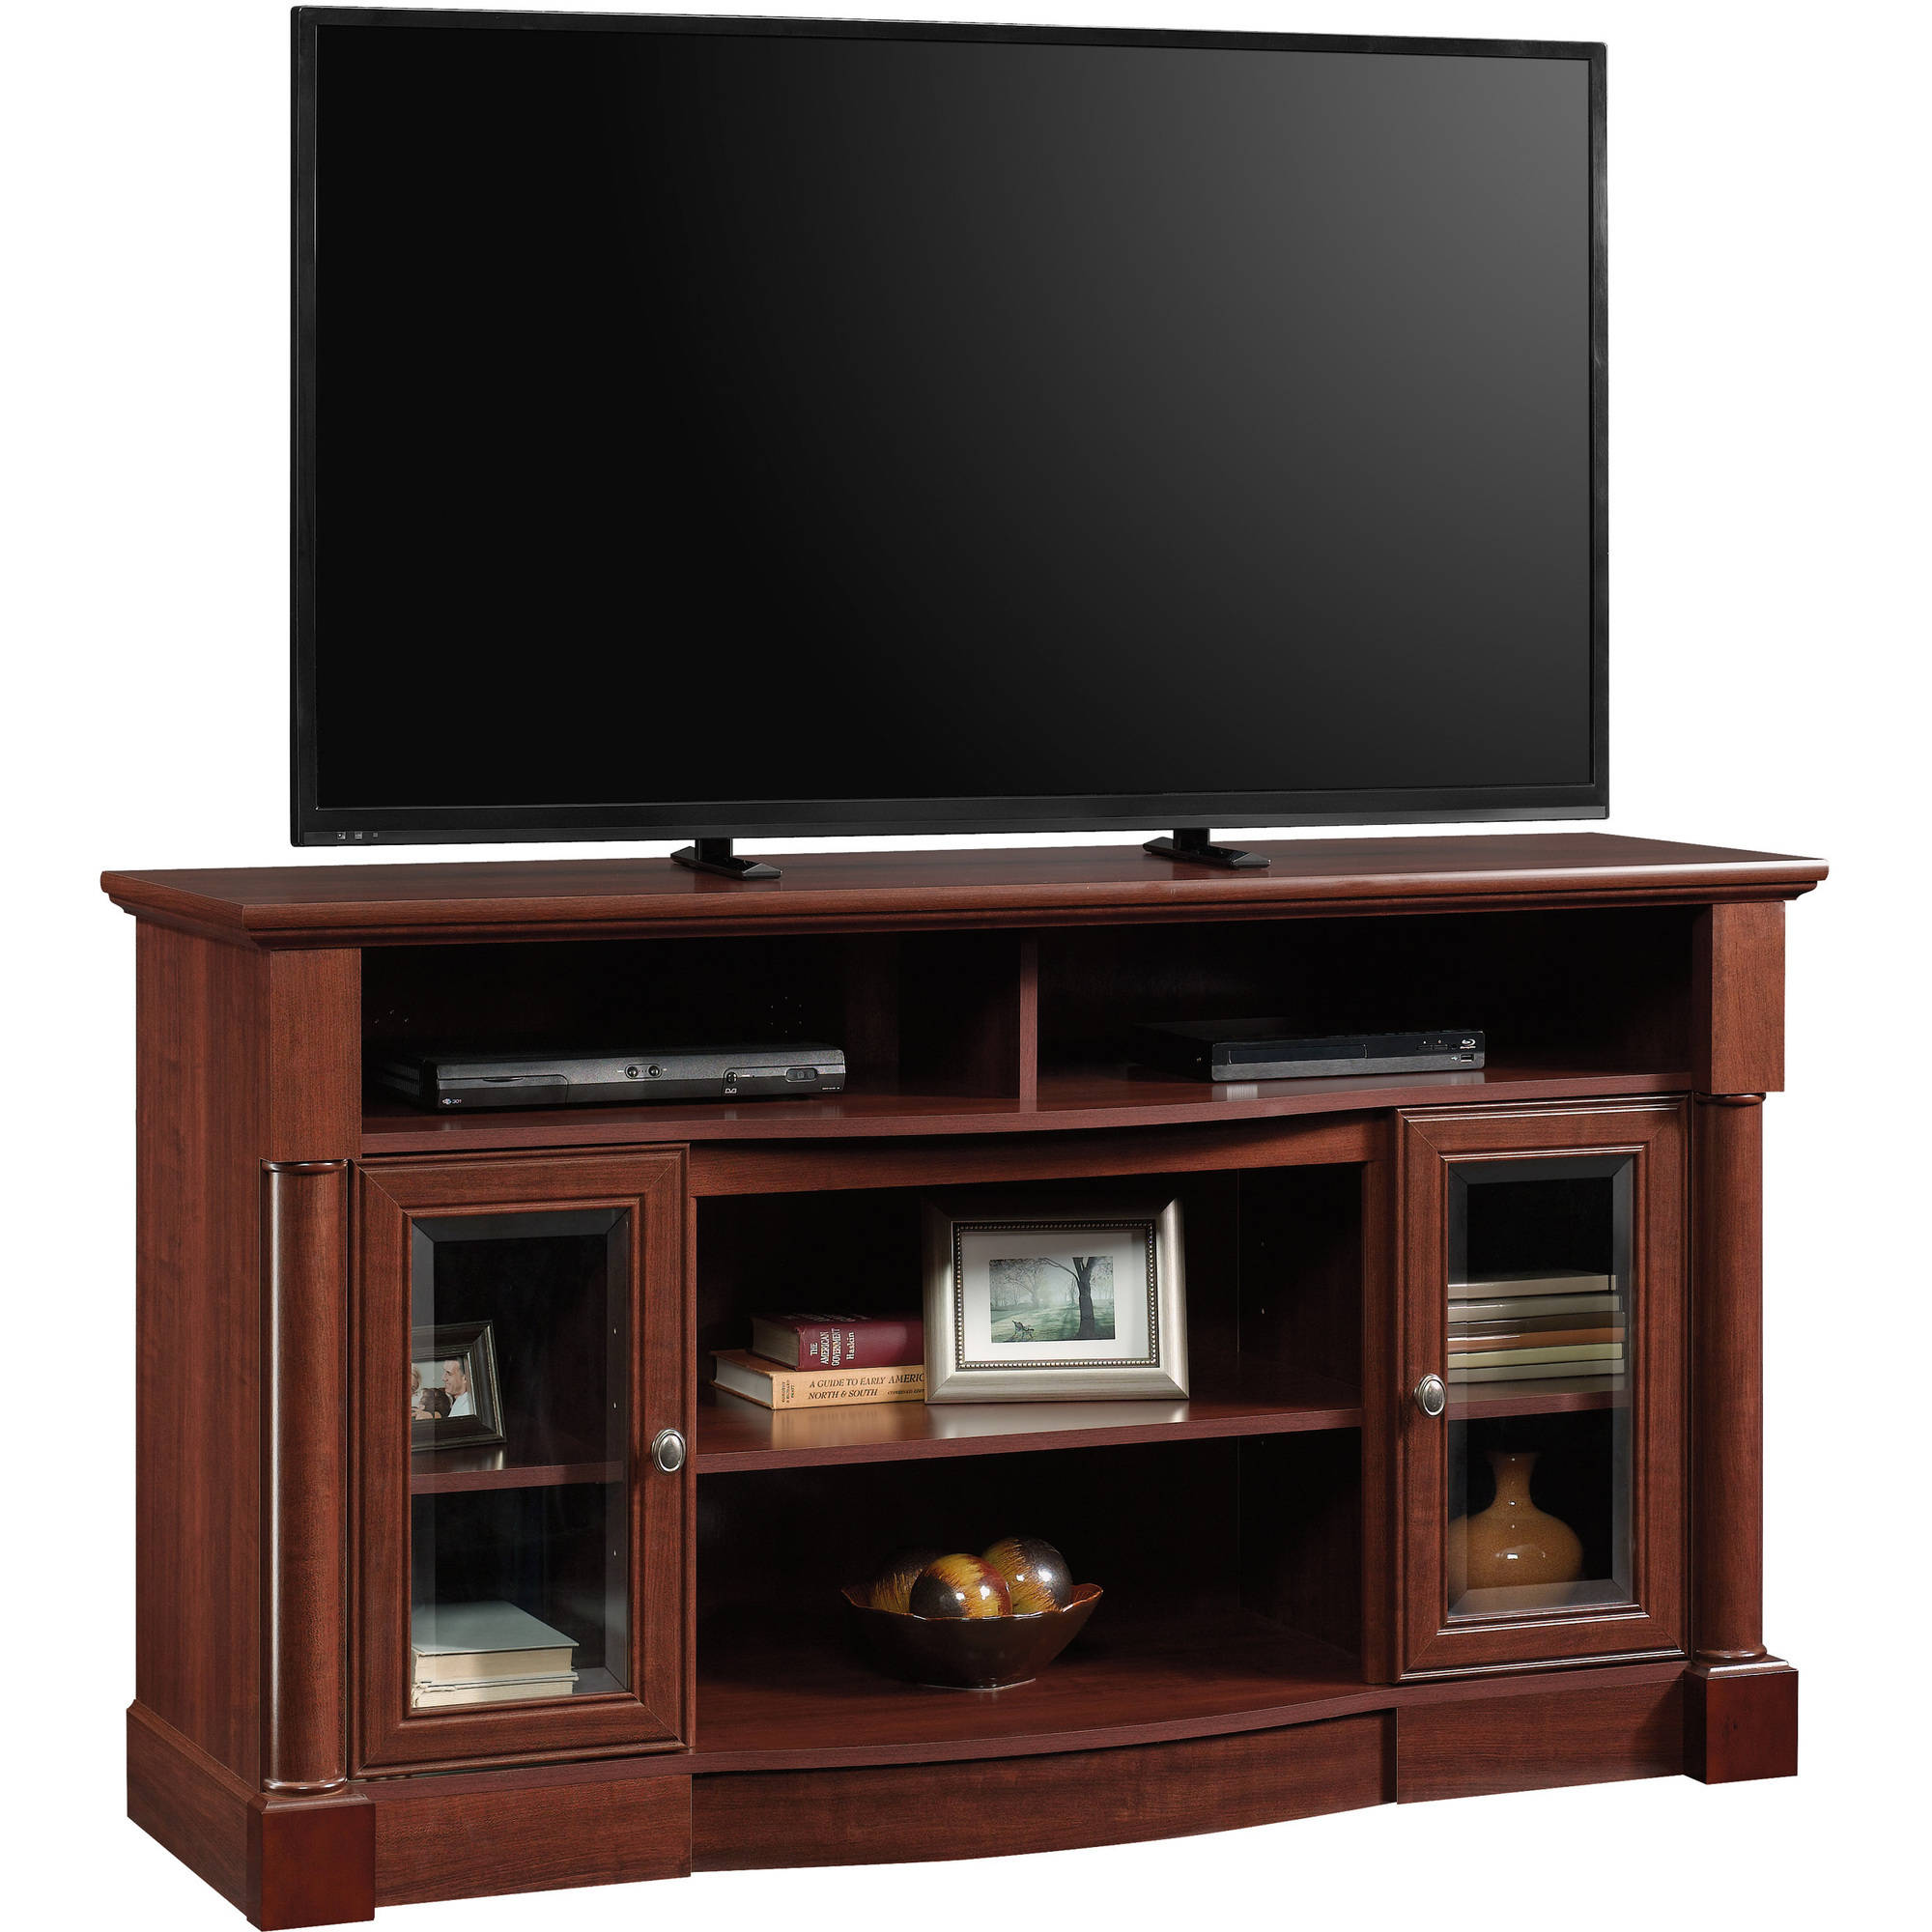 "Sauder Palladia Entertainment Credenza for TVs up to 60"", Select Cherry Finish"